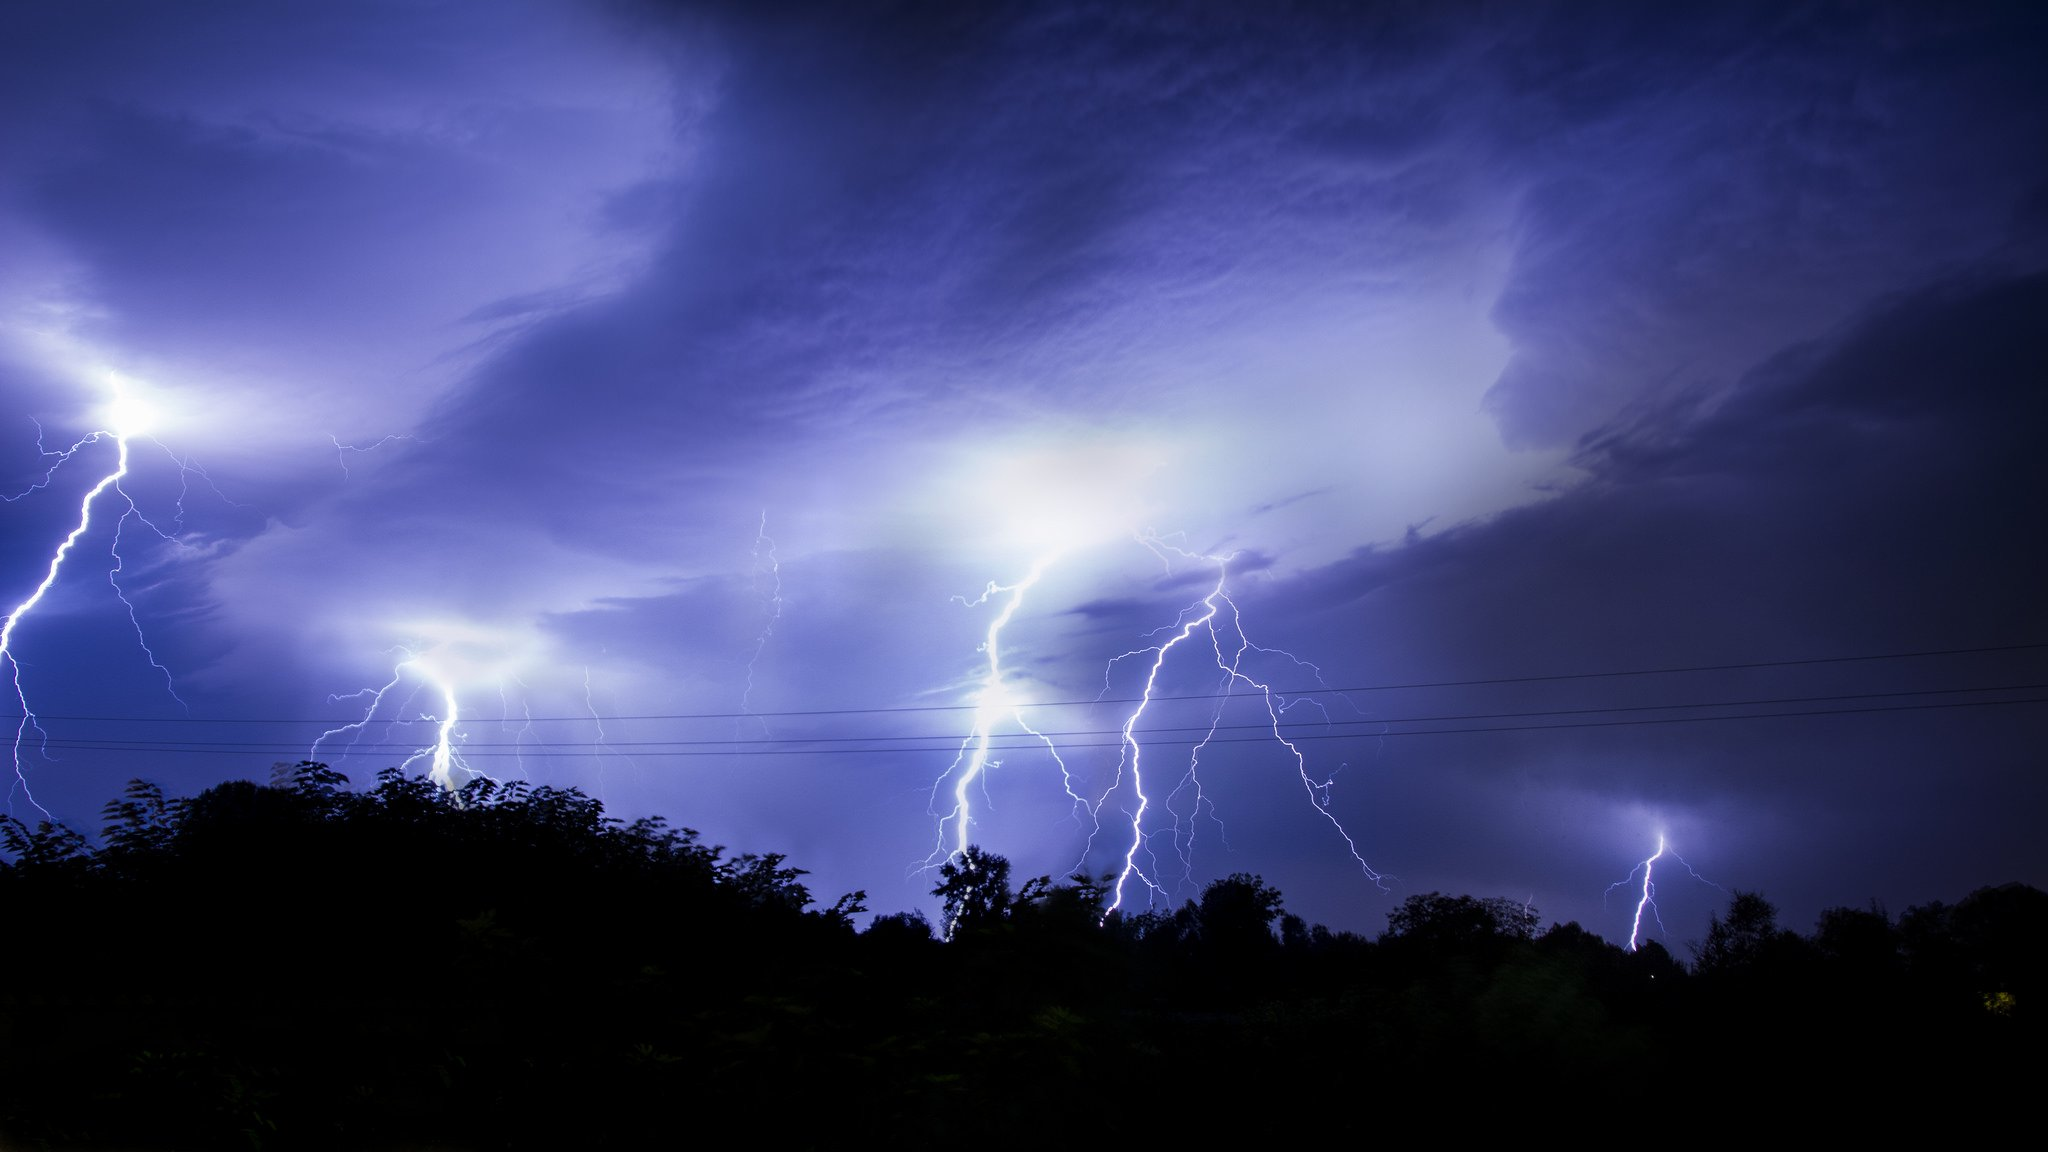 Thunder storn flash lightning sky night eclair nuit foudre nature walppaper wallpaper | 2048x1152 | 445864 | WallpaperUP